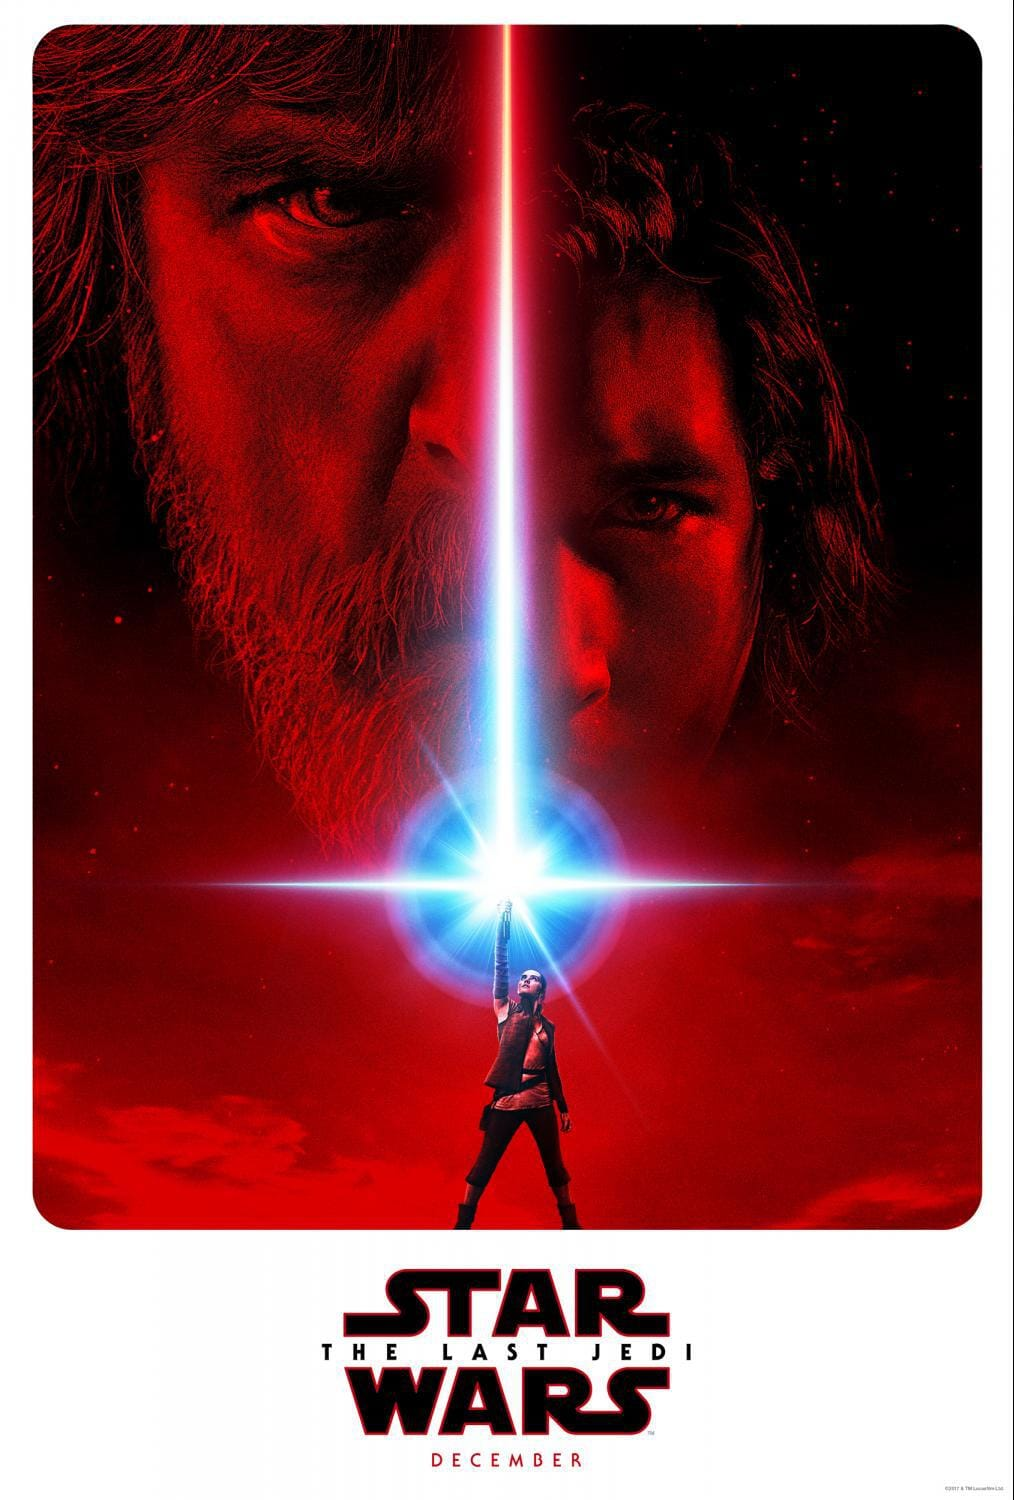 FIRST LOOK: New Trailer for Star Wars The Last Jedi